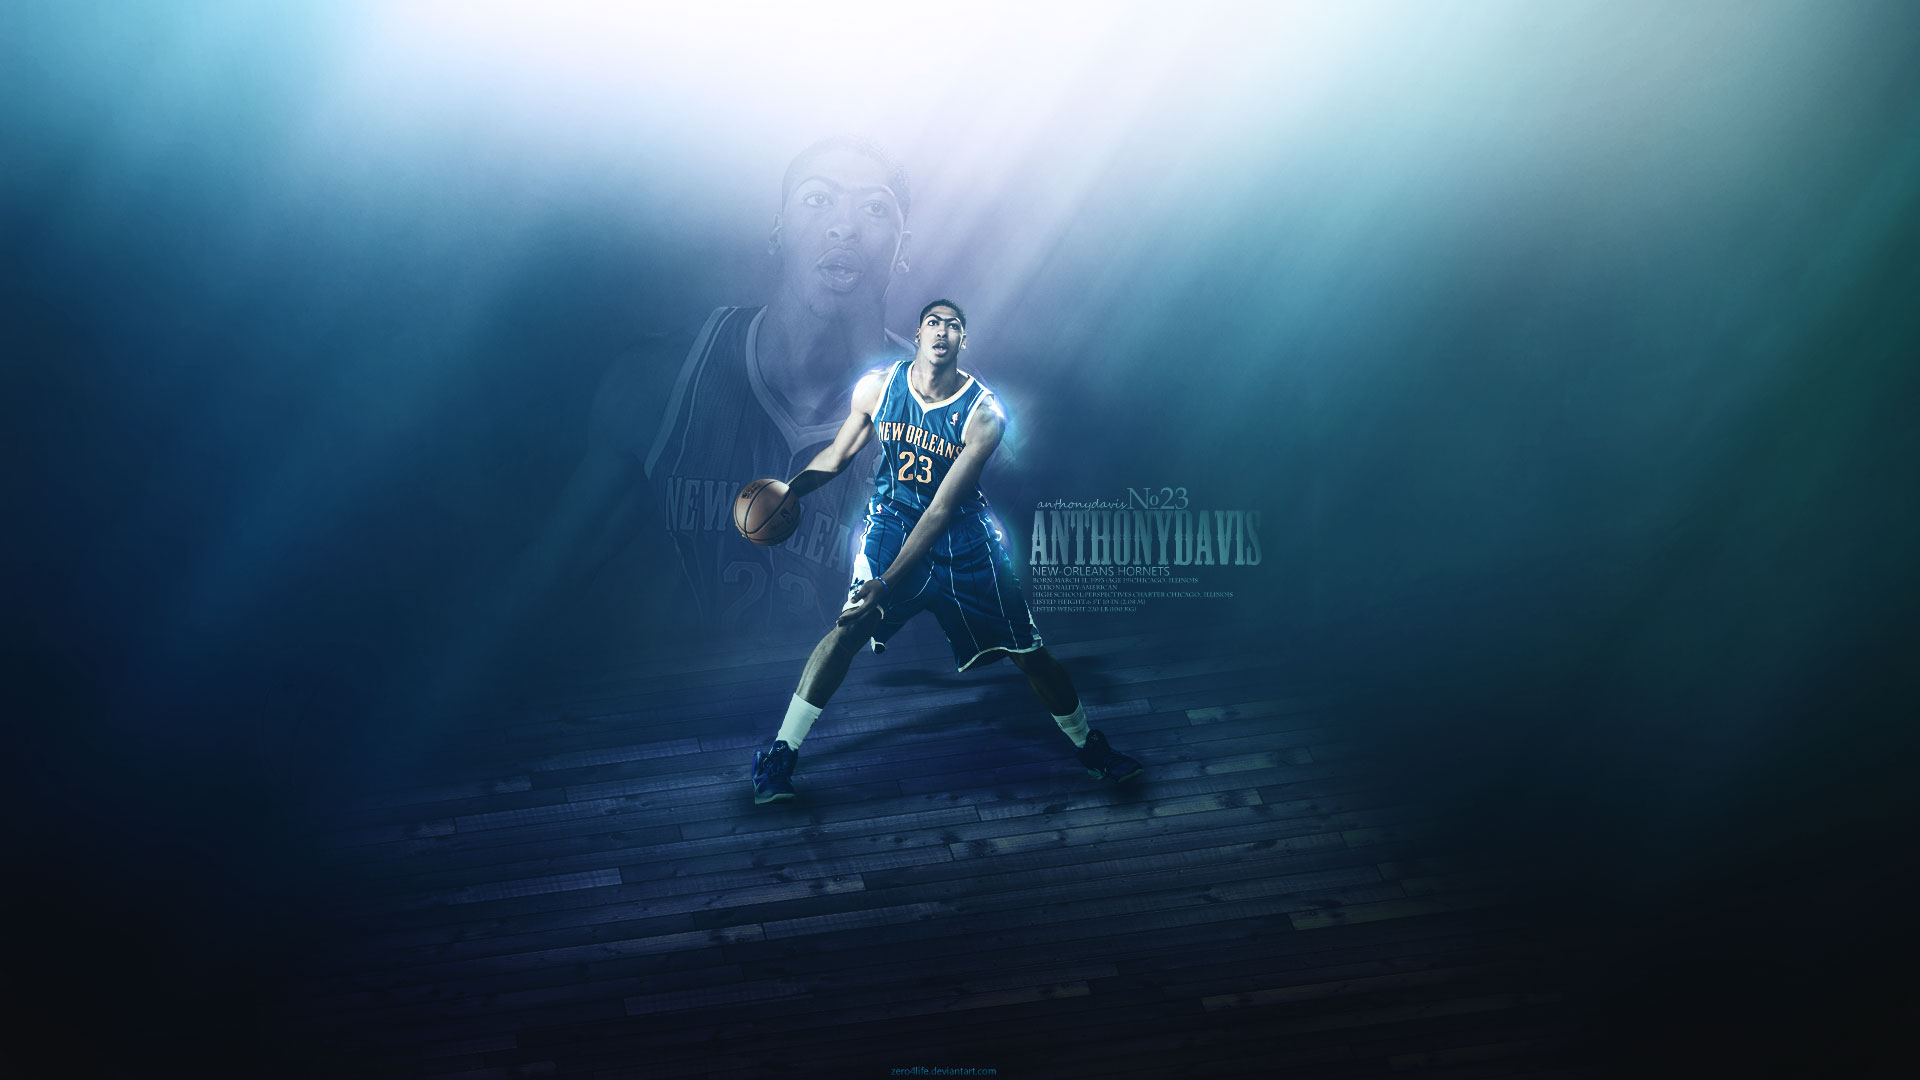 basketball wallpapers iphone 6 plus